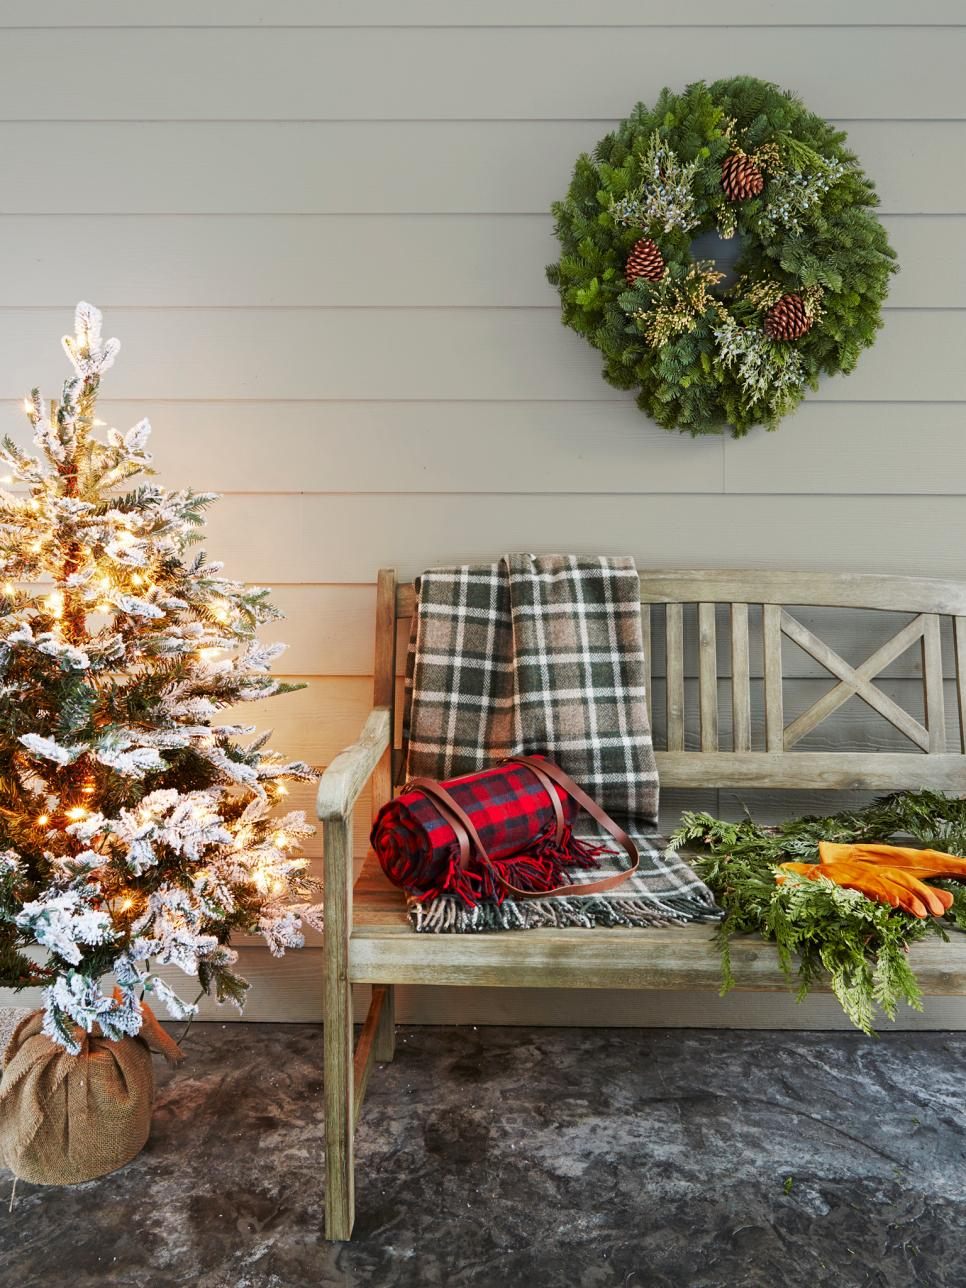 Make your front porch bench welcoming to all. Source: HGTV